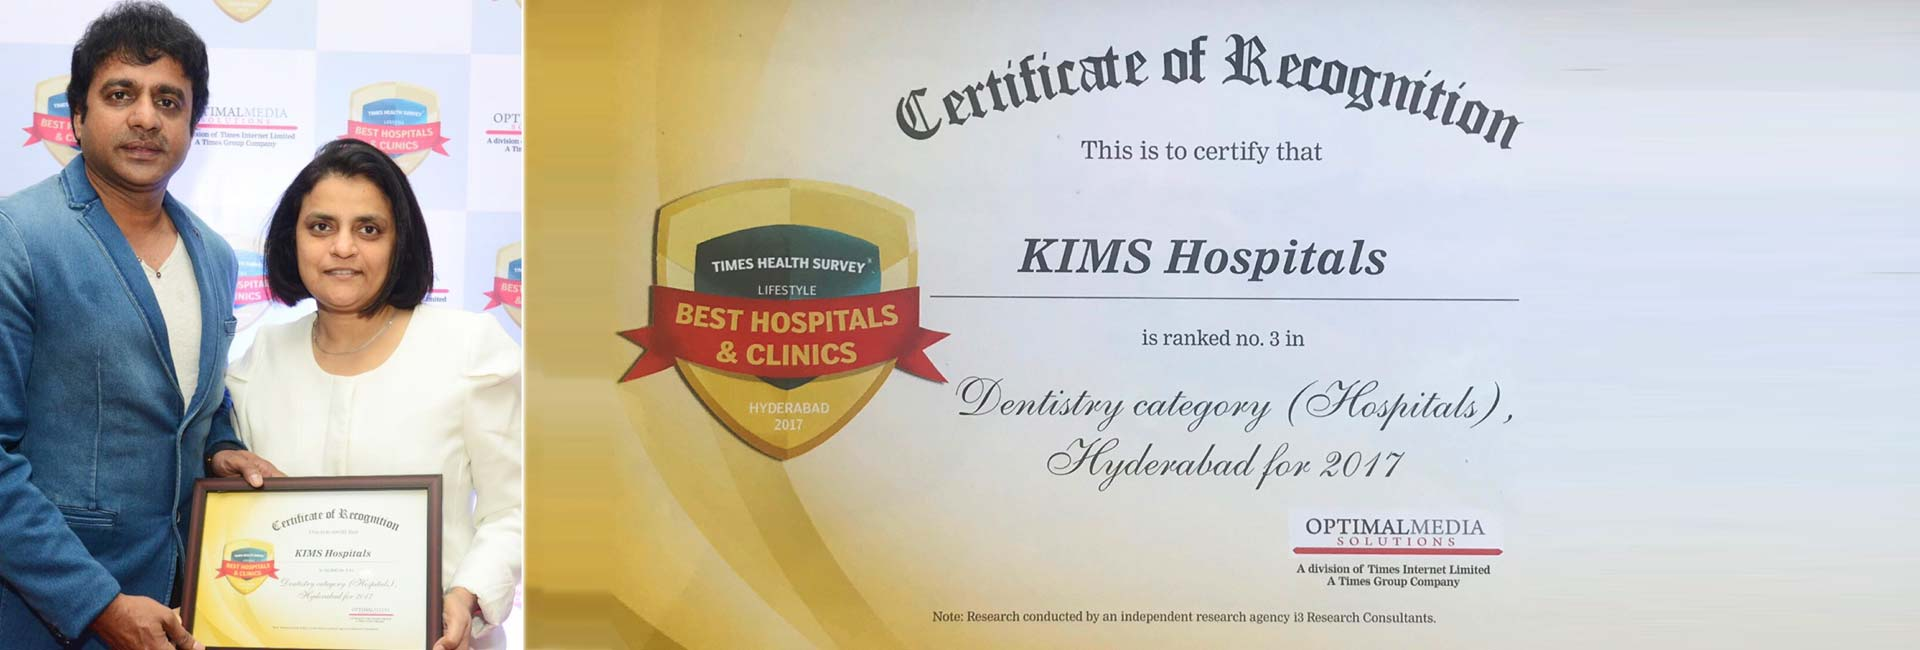 Kims dental hospital best rank in india rank 3 best dental dental clinic in Kondapur,